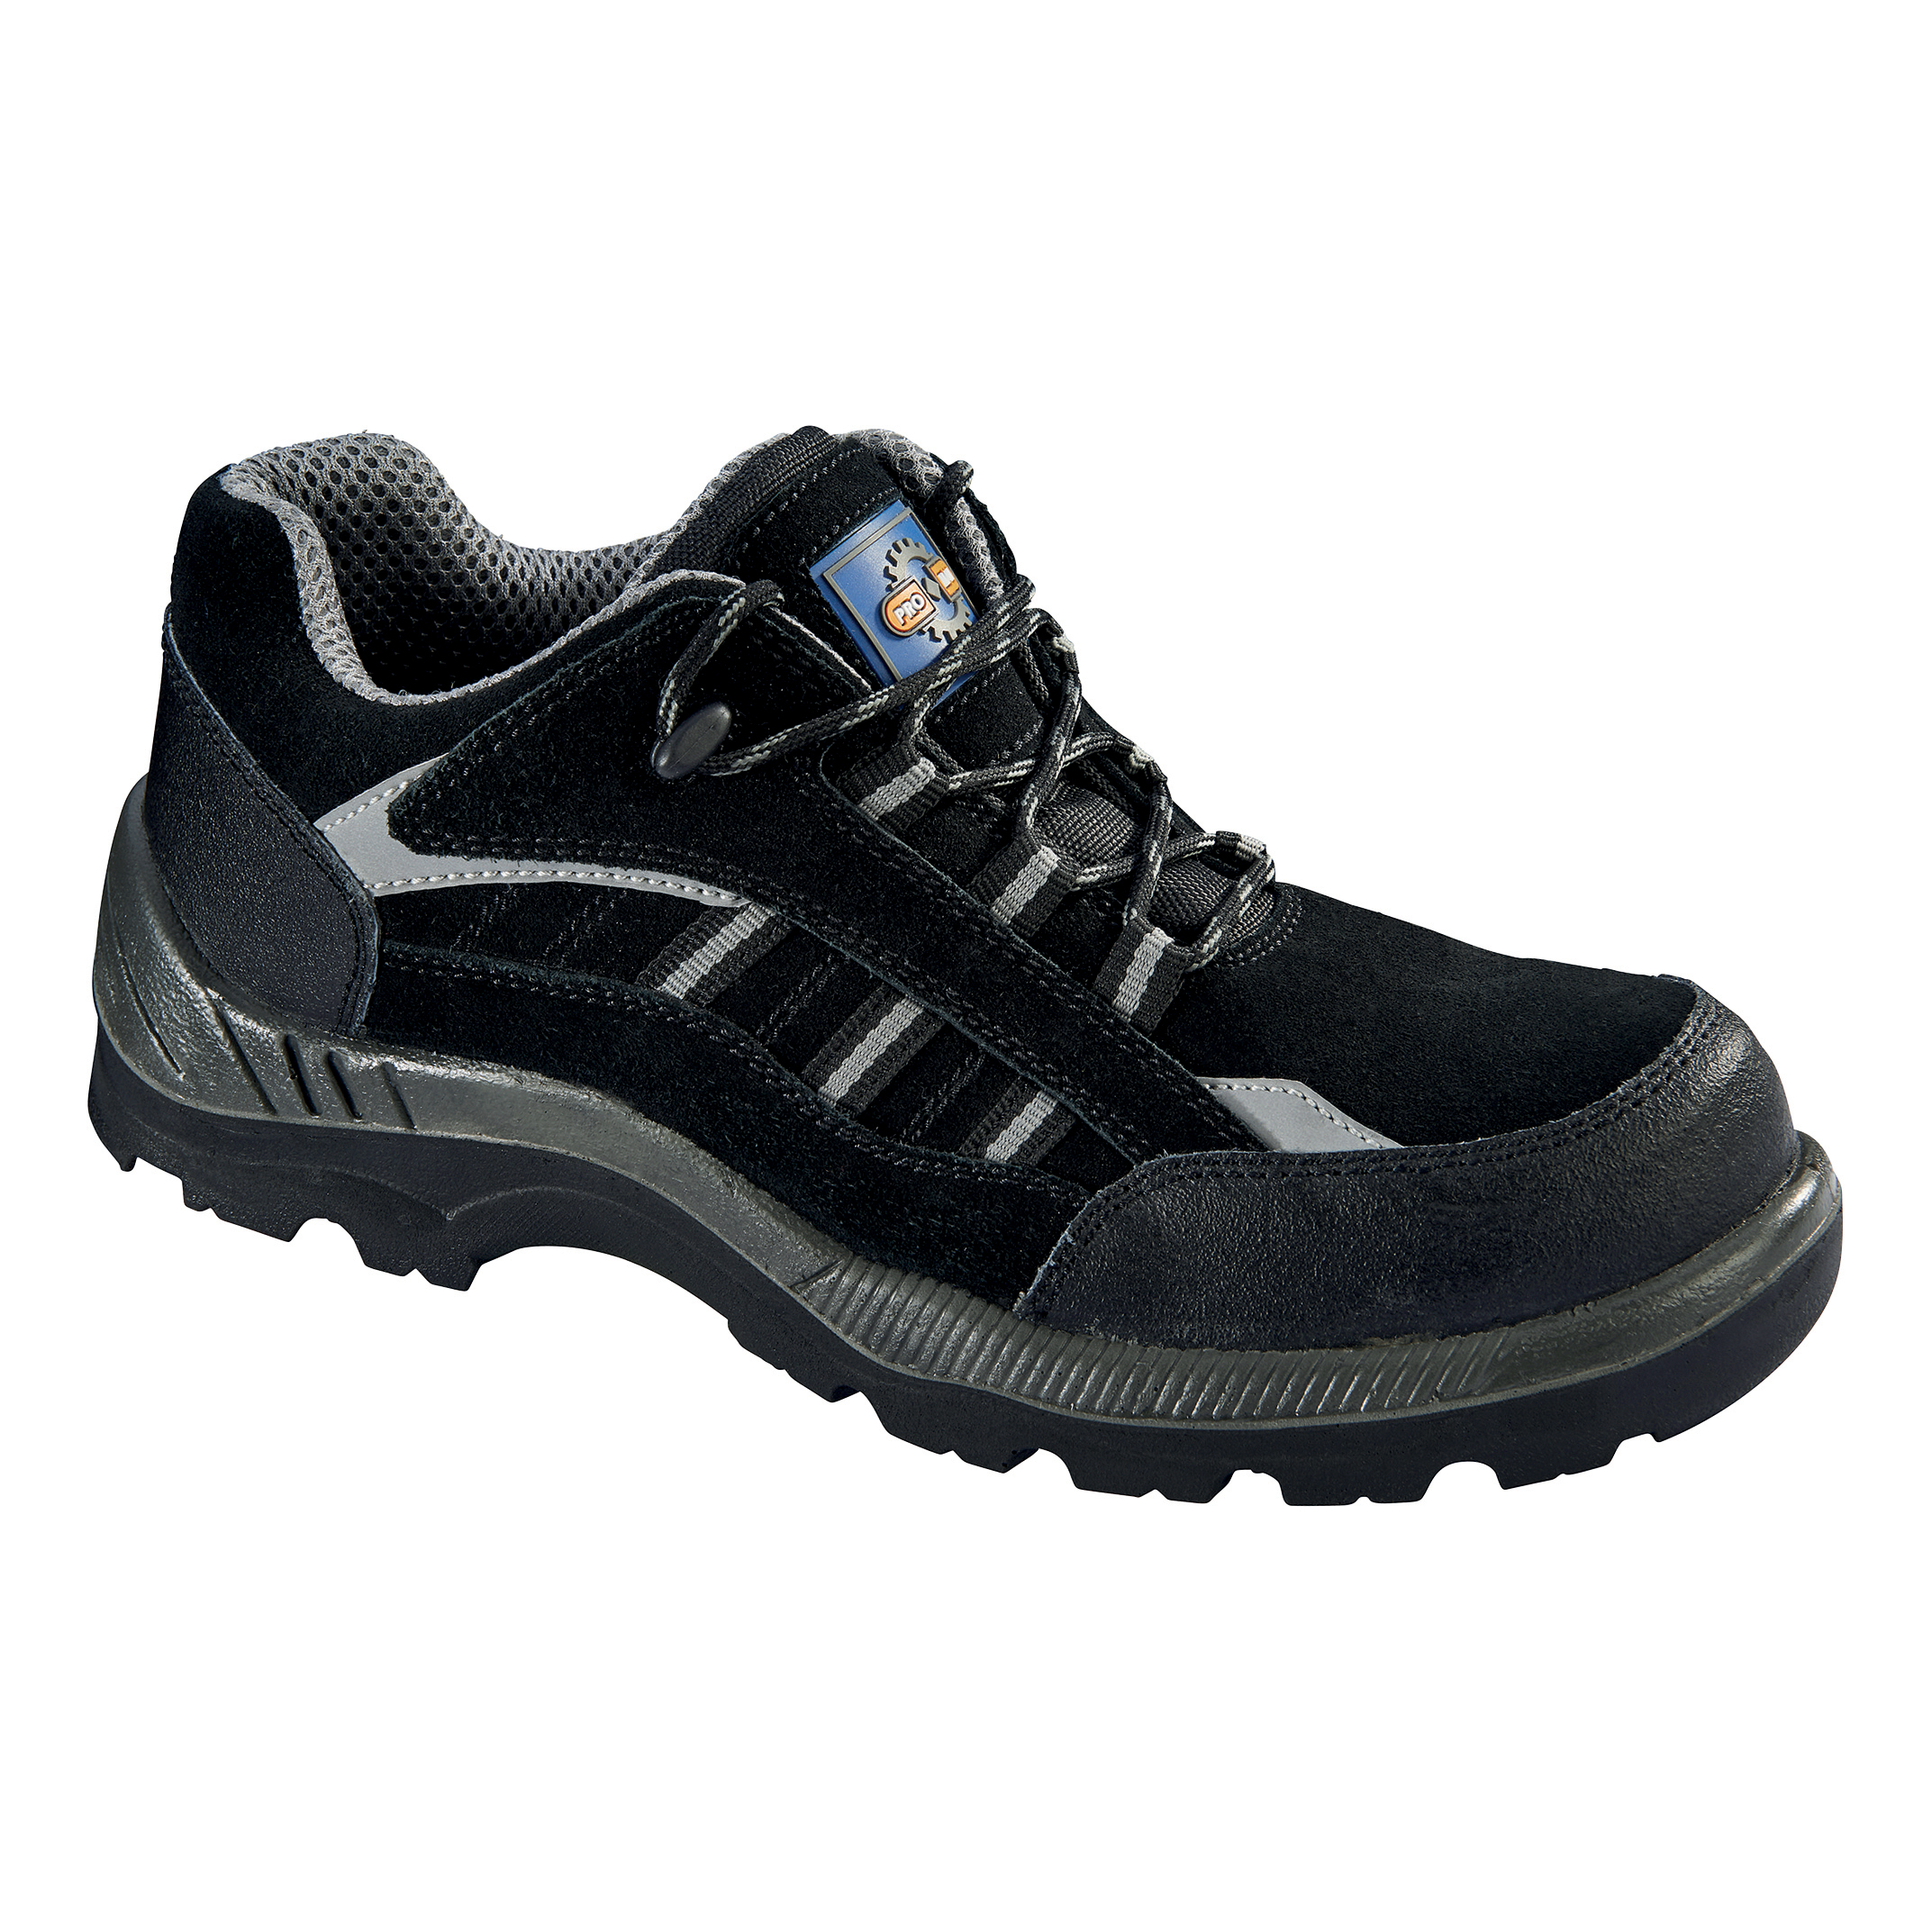 Safety shoes Rockfall ProMan Trainer Suede Fibreglass Toecap Black Size 3 Ref PM4040 3